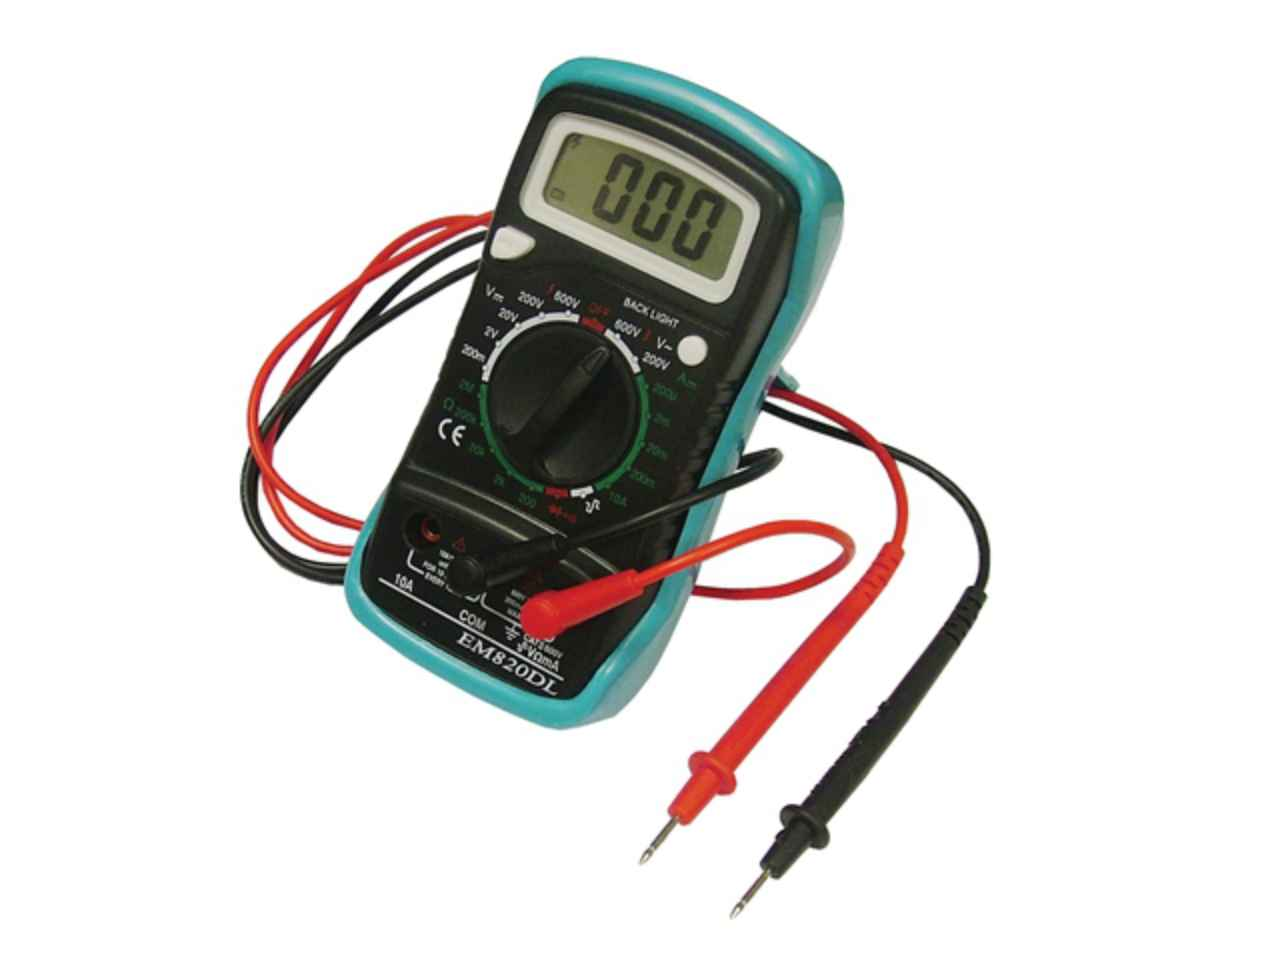 Electricians Tools Testers Meters Wera Kraftform Voltage Tester Screwdriver Circuit